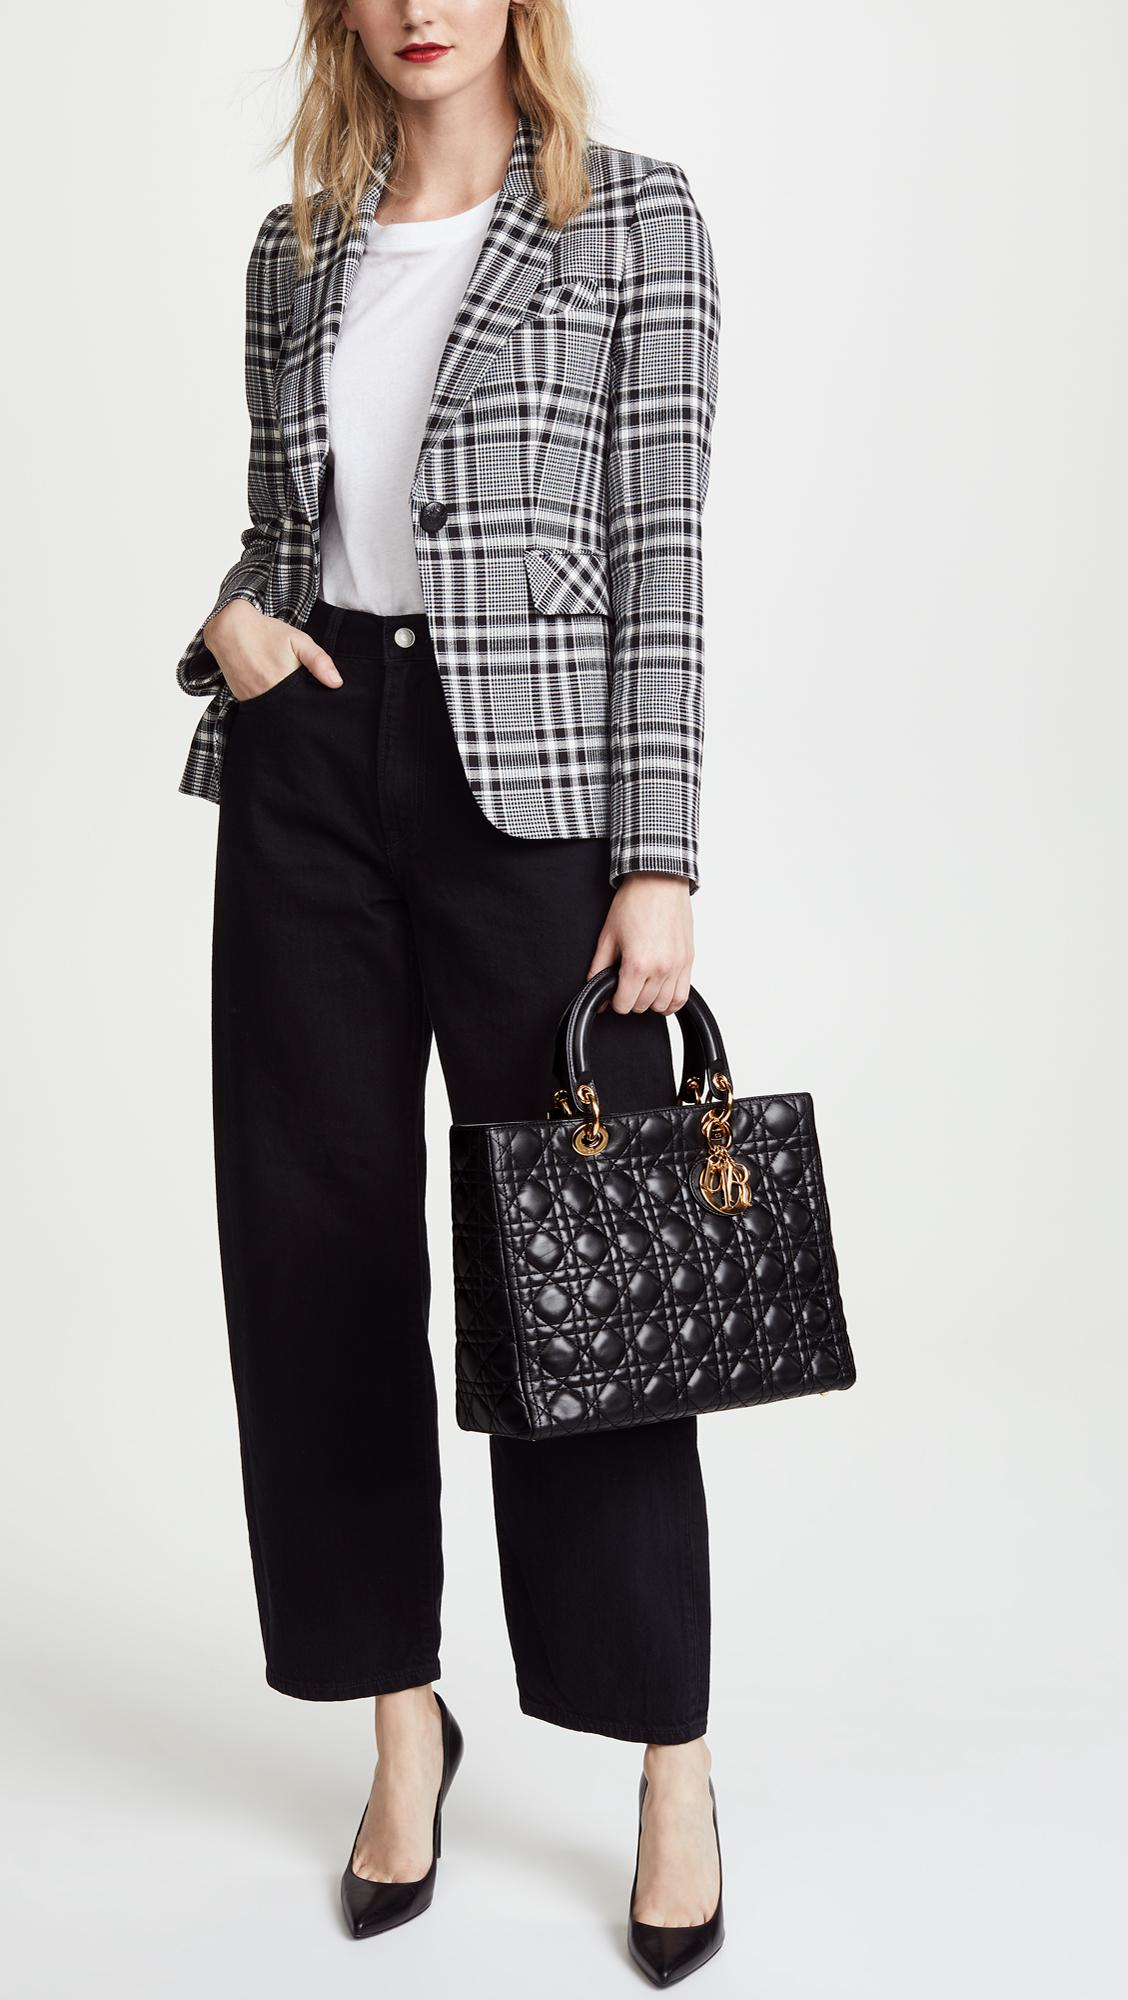 c8d087c020a5 What Goes Around Comes Around - Black Dior Lady Dior Bag - Lyst. View  fullscreen